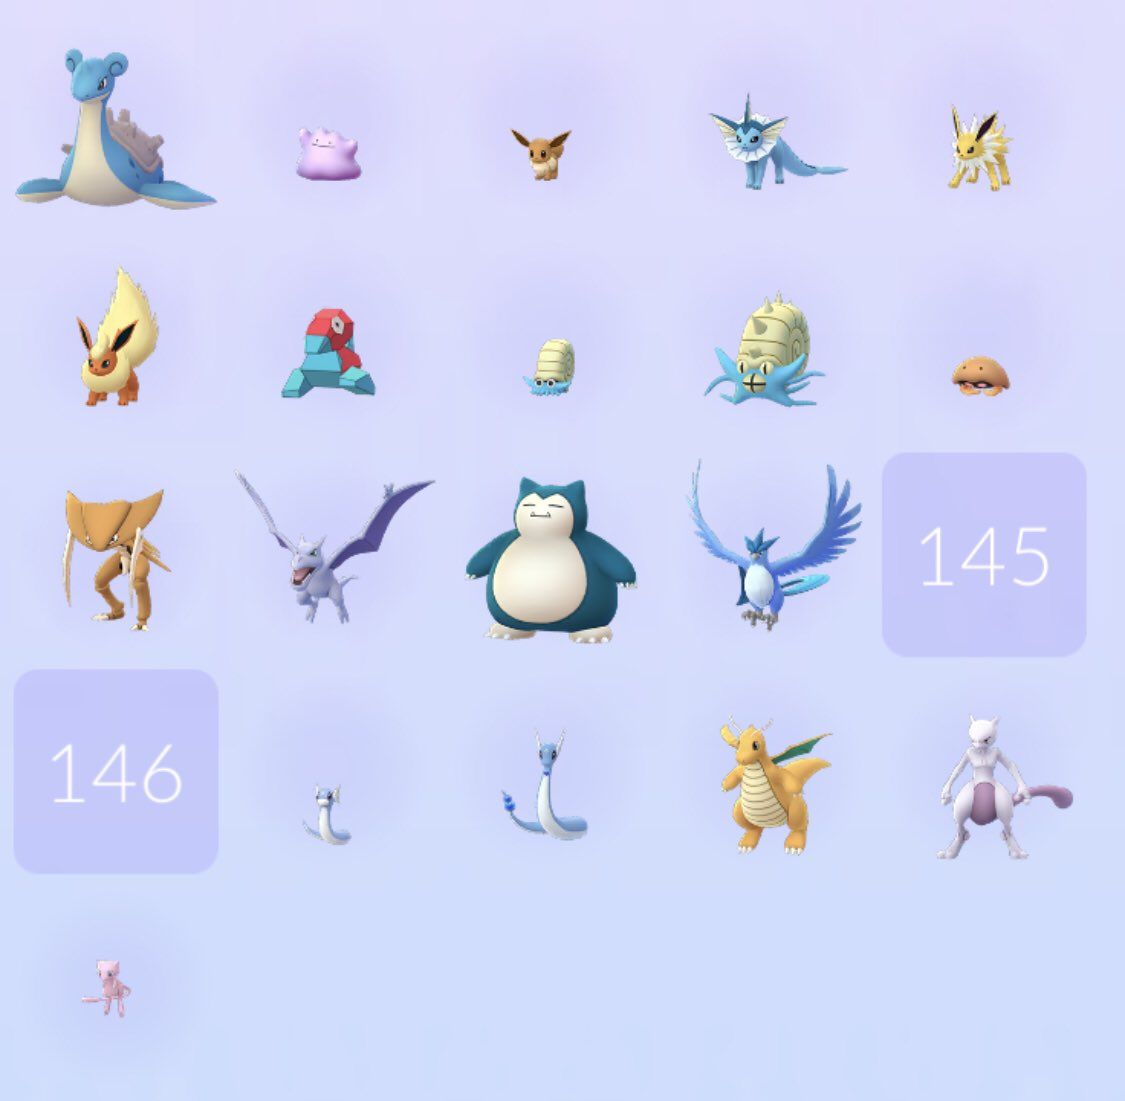 So awkward that I never got a Zapdos or Moltres yet... I hope they come back soon for a limited time  #pokemongo <br>http://pic.twitter.com/Fp0P9Awa8x